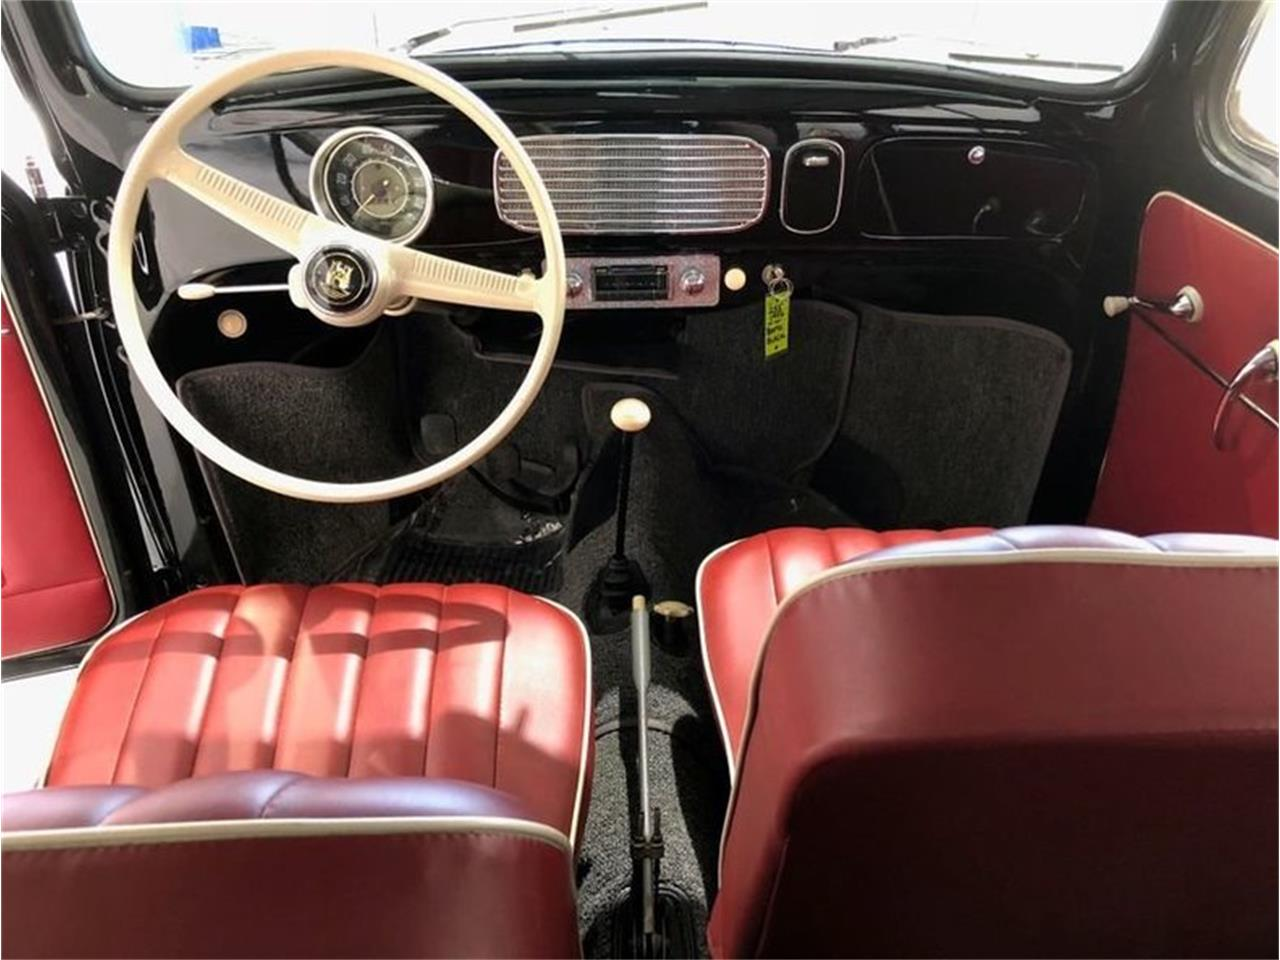 Large Picture of Classic 1956 Beetle located in Punta Gorda Florida Auction Vehicle Offered by Premier Auction Group - NKI3